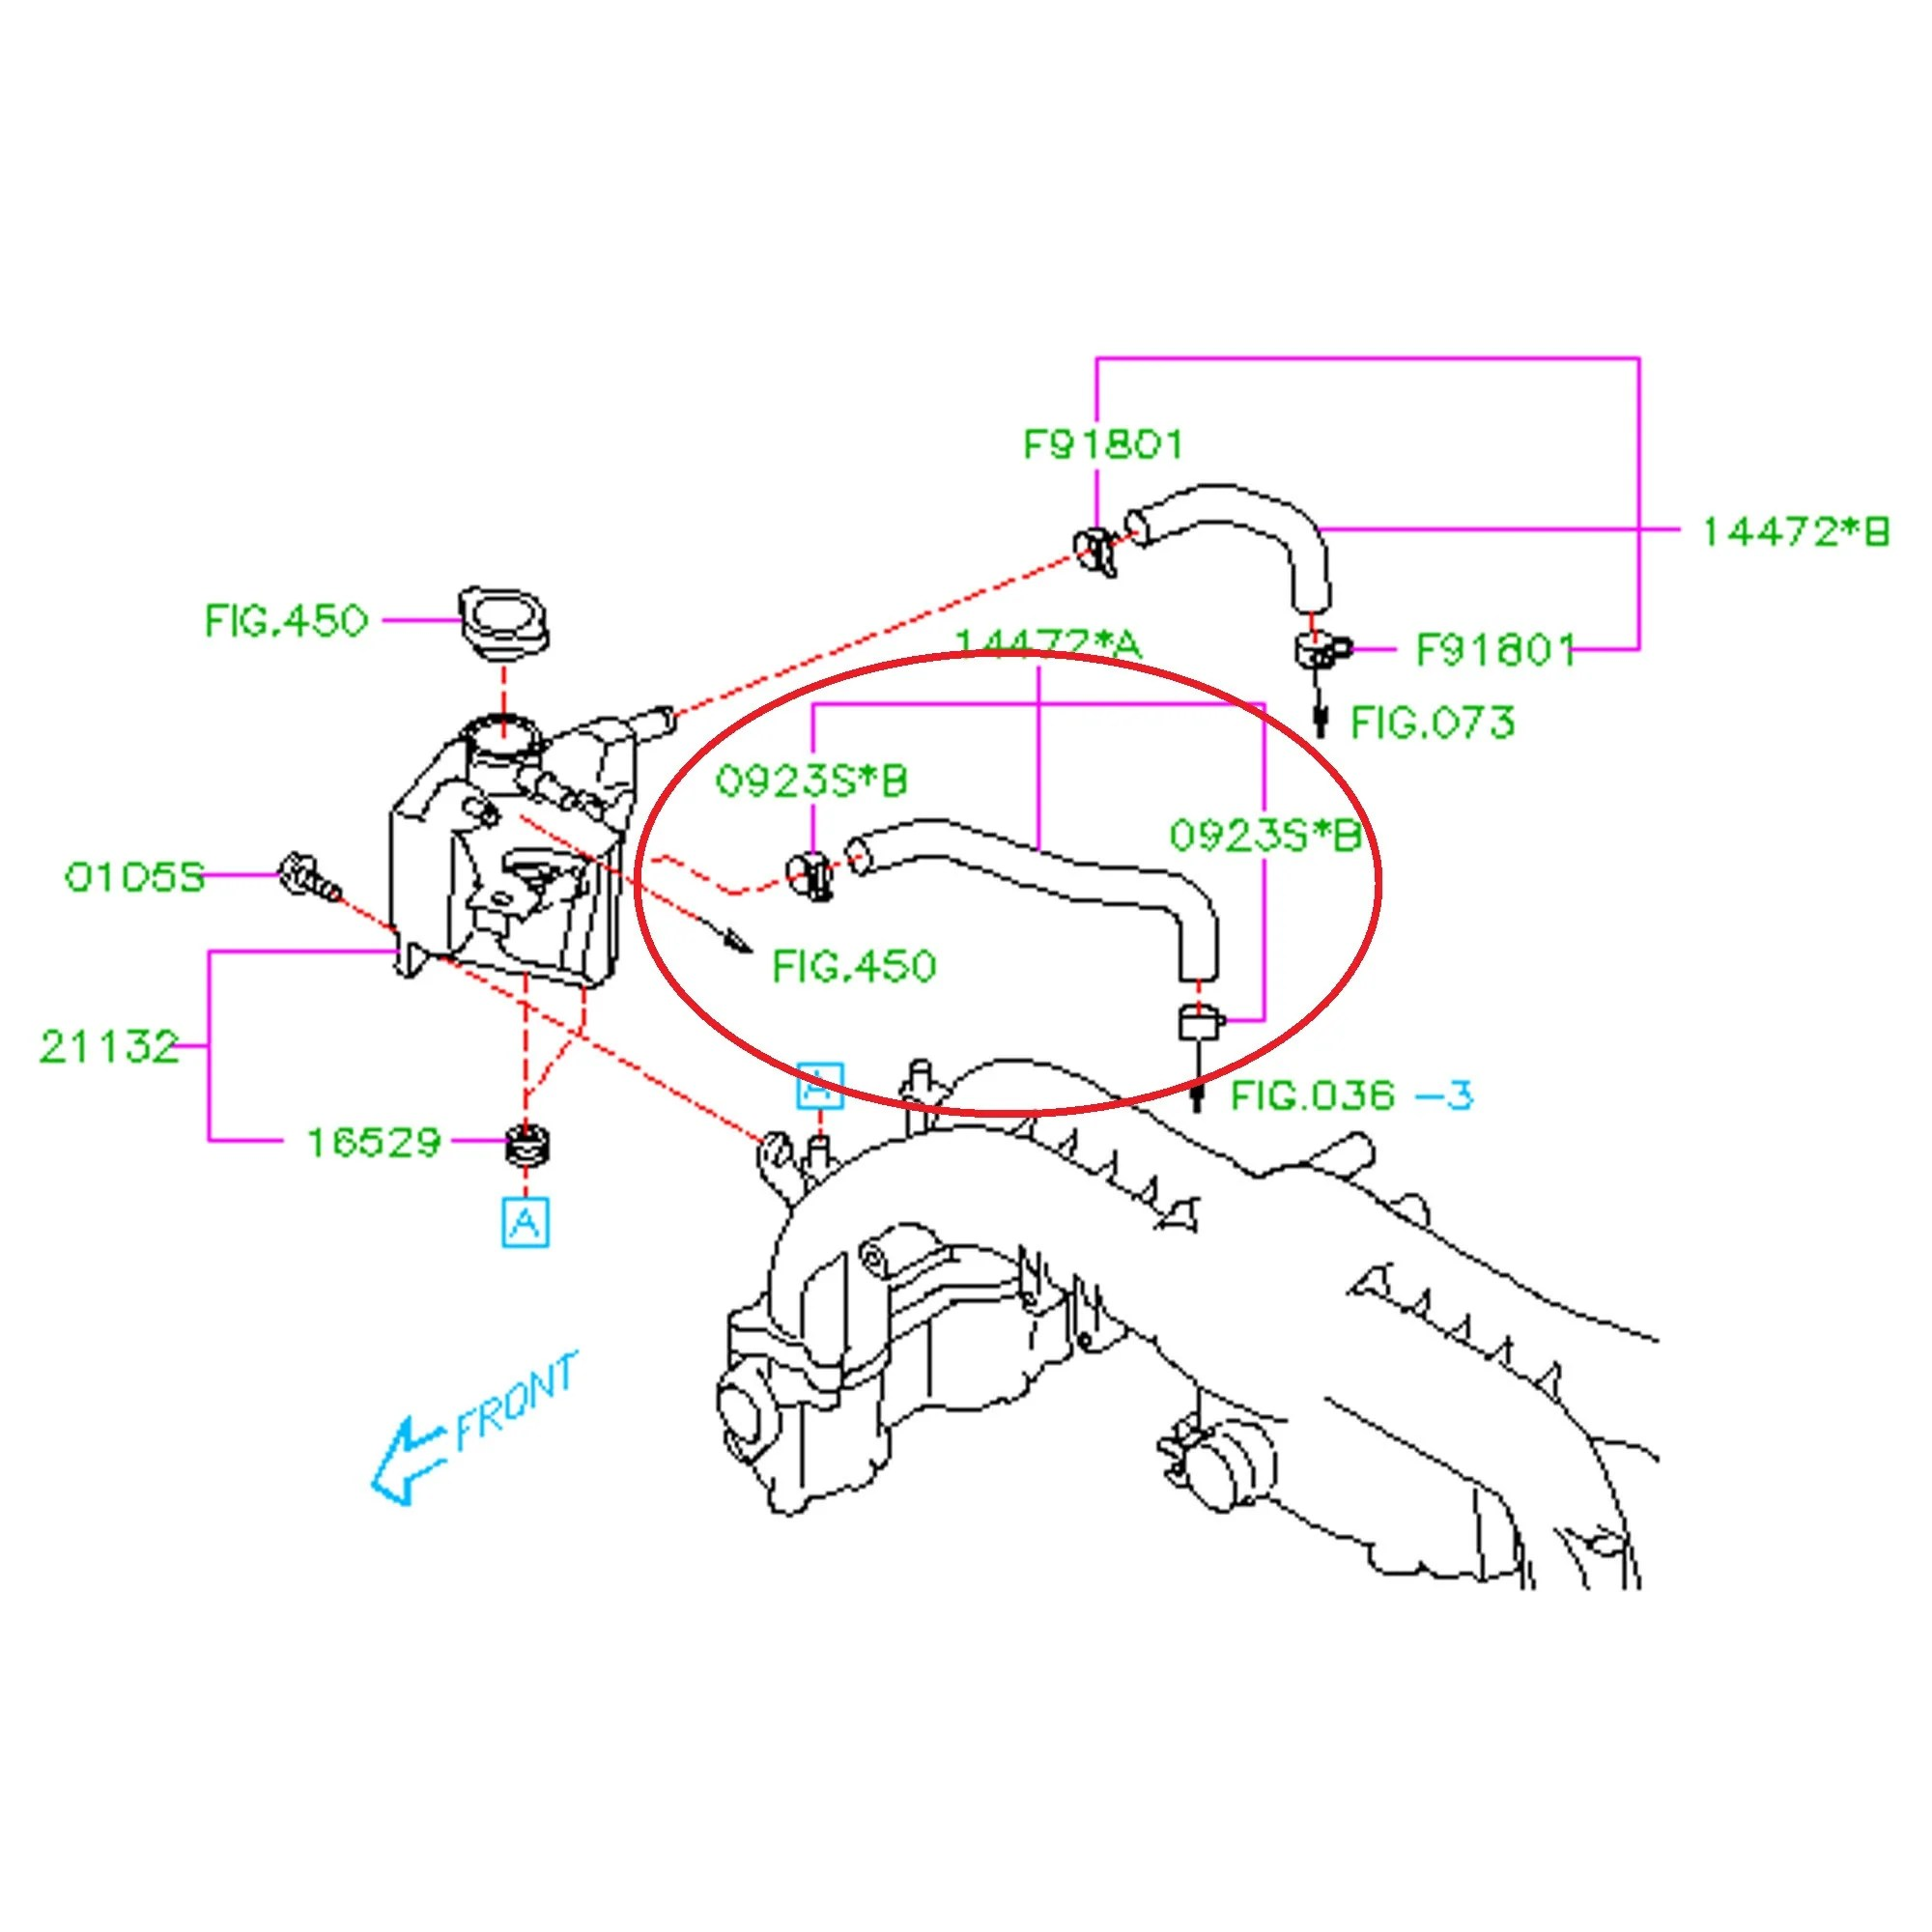 small resolution of vacuum line diagram on 2004 subaru impreza wrx sti parts diagram subaru wrx wiring diagram 2002